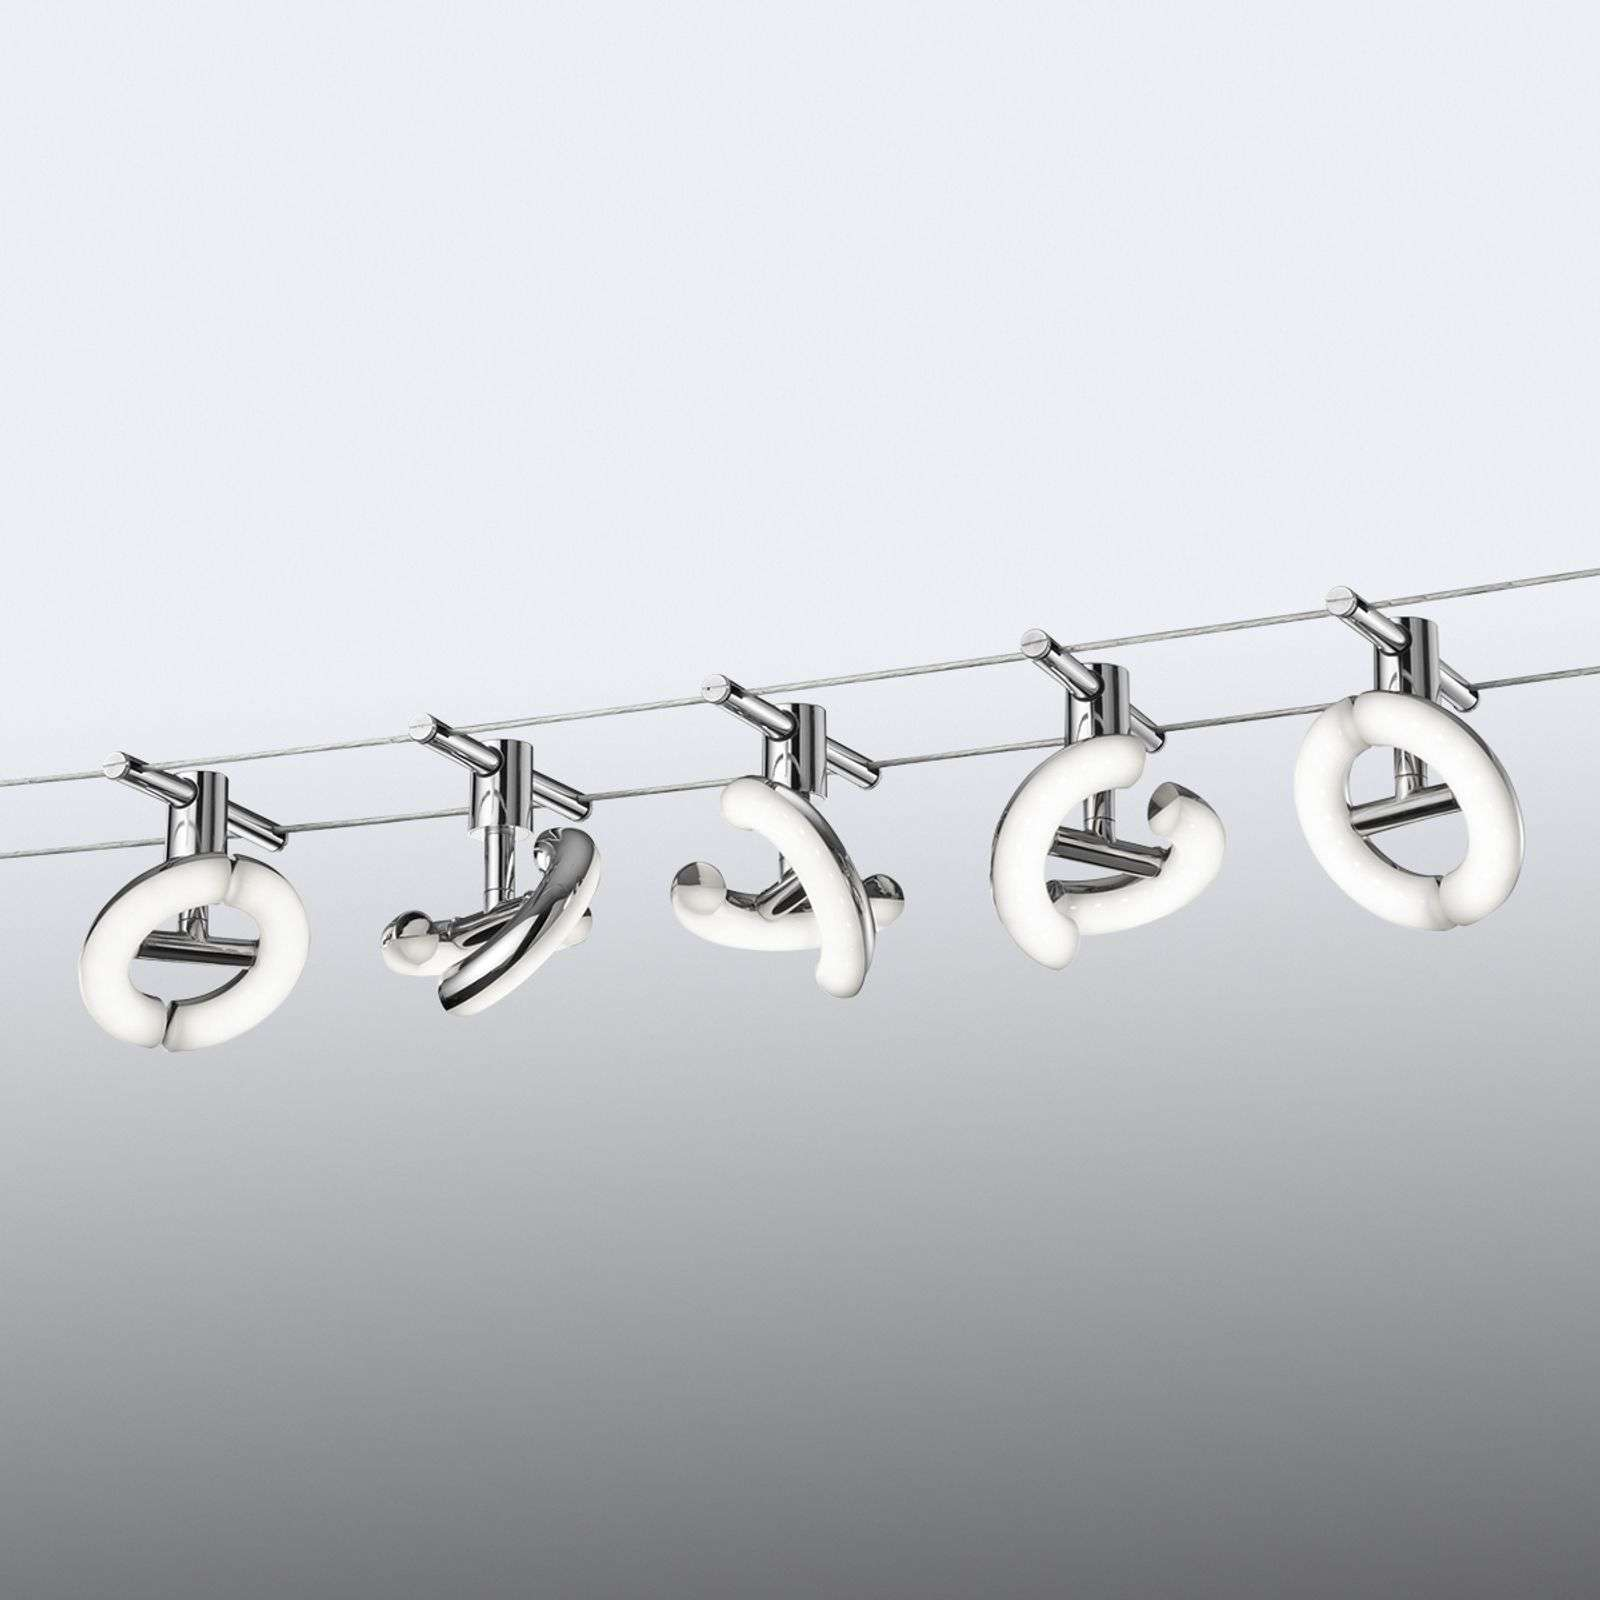 sale on cable lighting latest range at